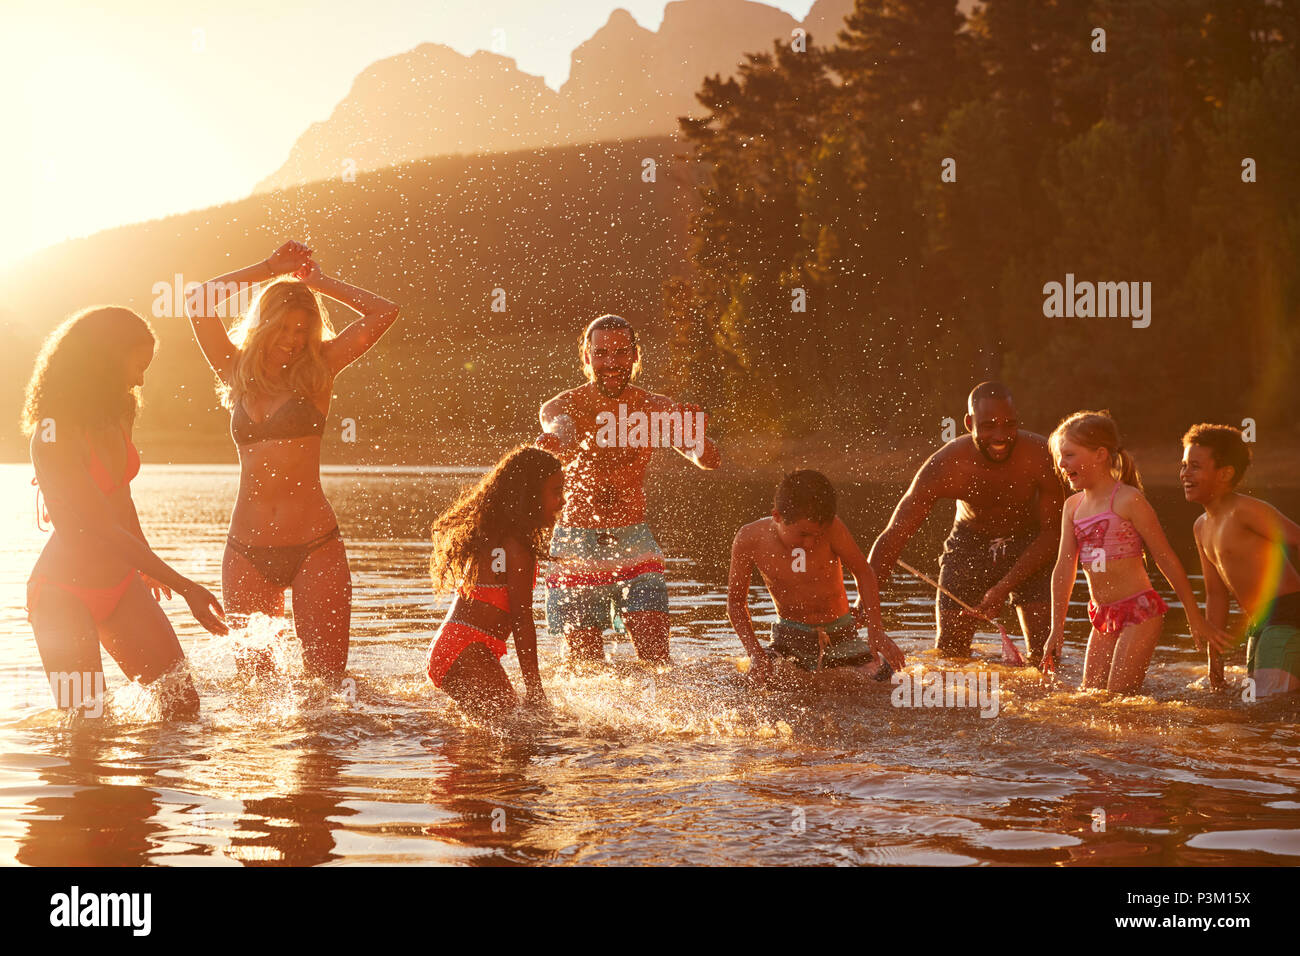 Family With Friends Enjoying Evening Swim In Countryside Lake - Stock Image